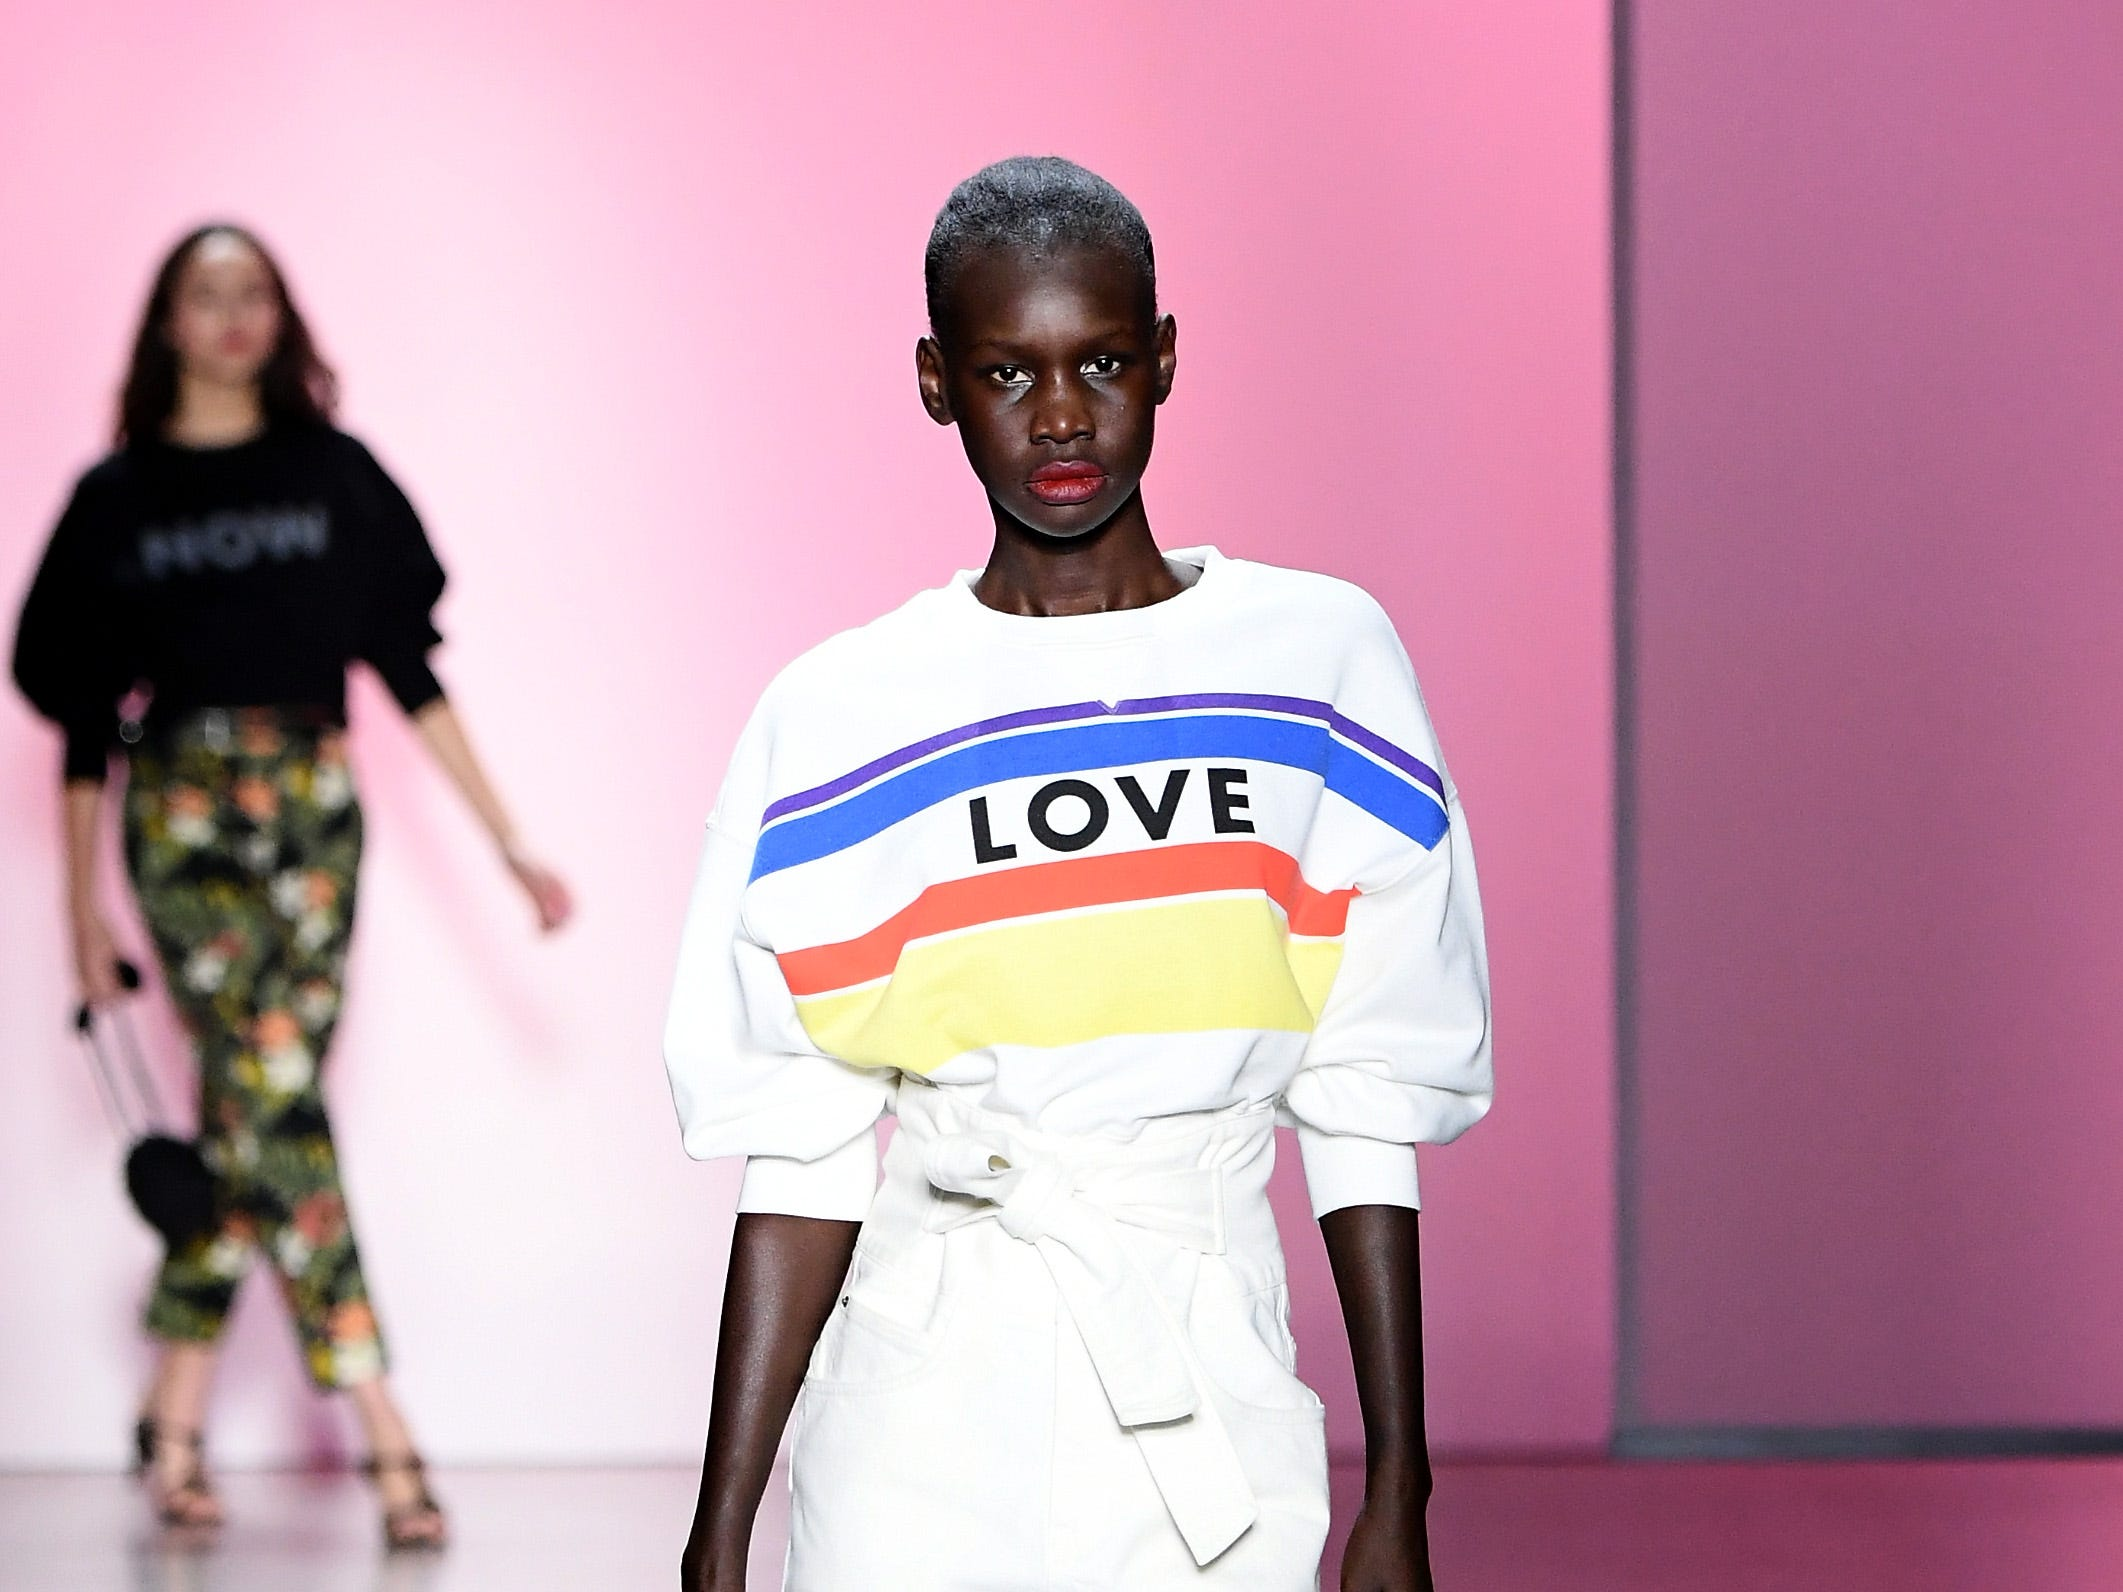 NEW YORK, NY - FEBRUARY 10:  A model walks the runway for the Rebecca Minkoff fashion show during New York Fashion Week: The Shows at Gallery I at Spring Studios on February 10, 2019 in New York City.  (Photo by Mike Coppola/Getty Images for NYFW: The Shows) ORG XMIT: 775290847 ORIG FILE ID: 1097085542